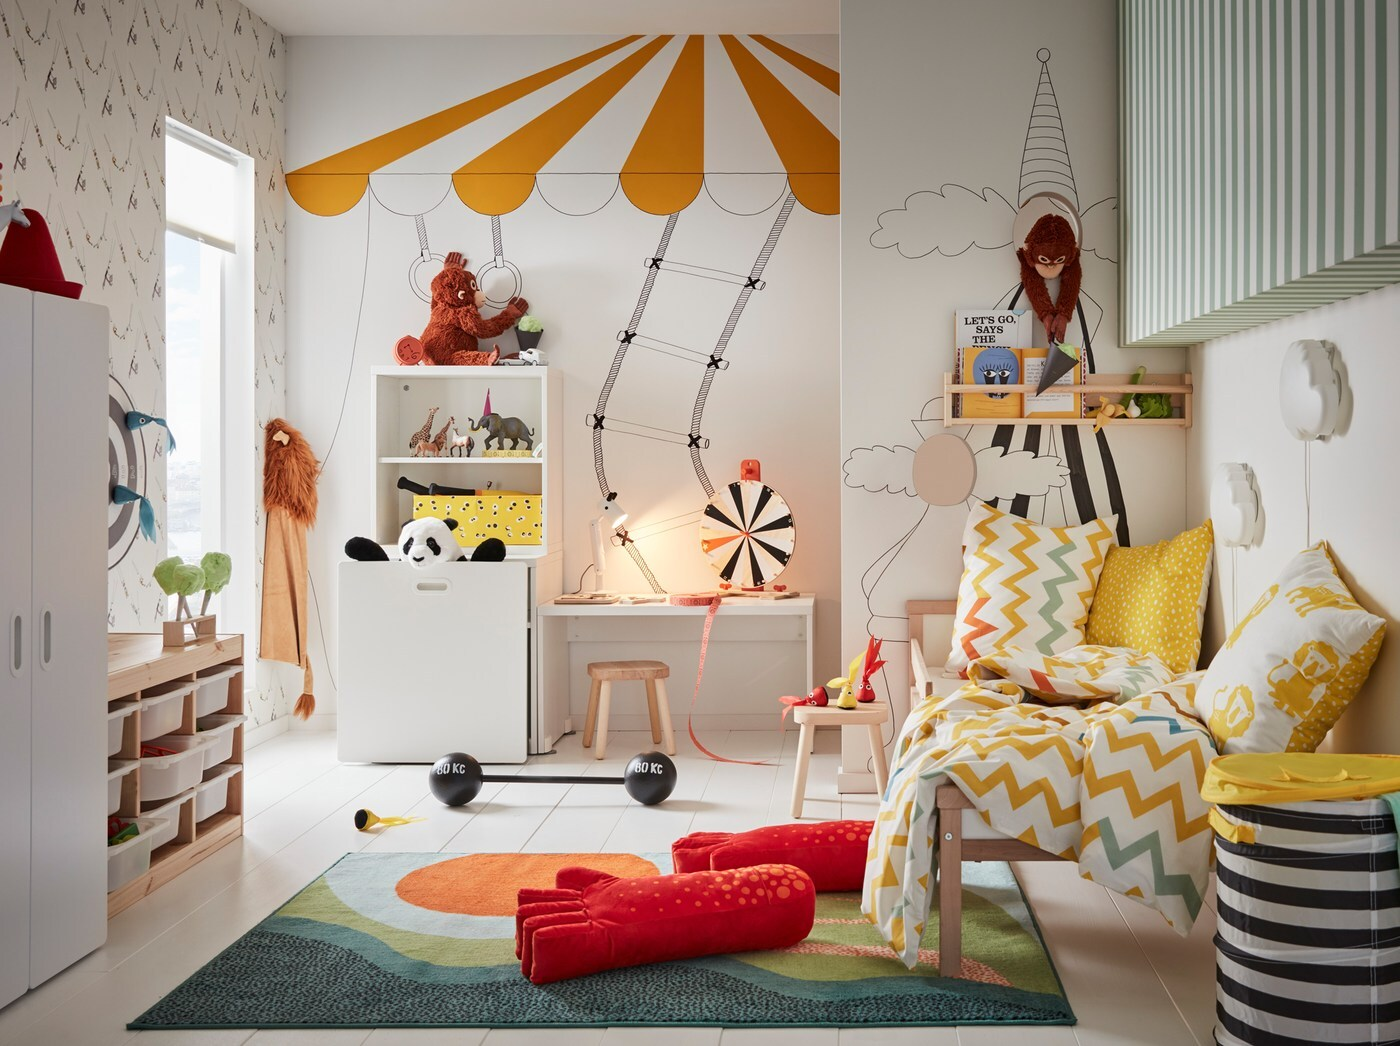 regal ikea kinderzimmer